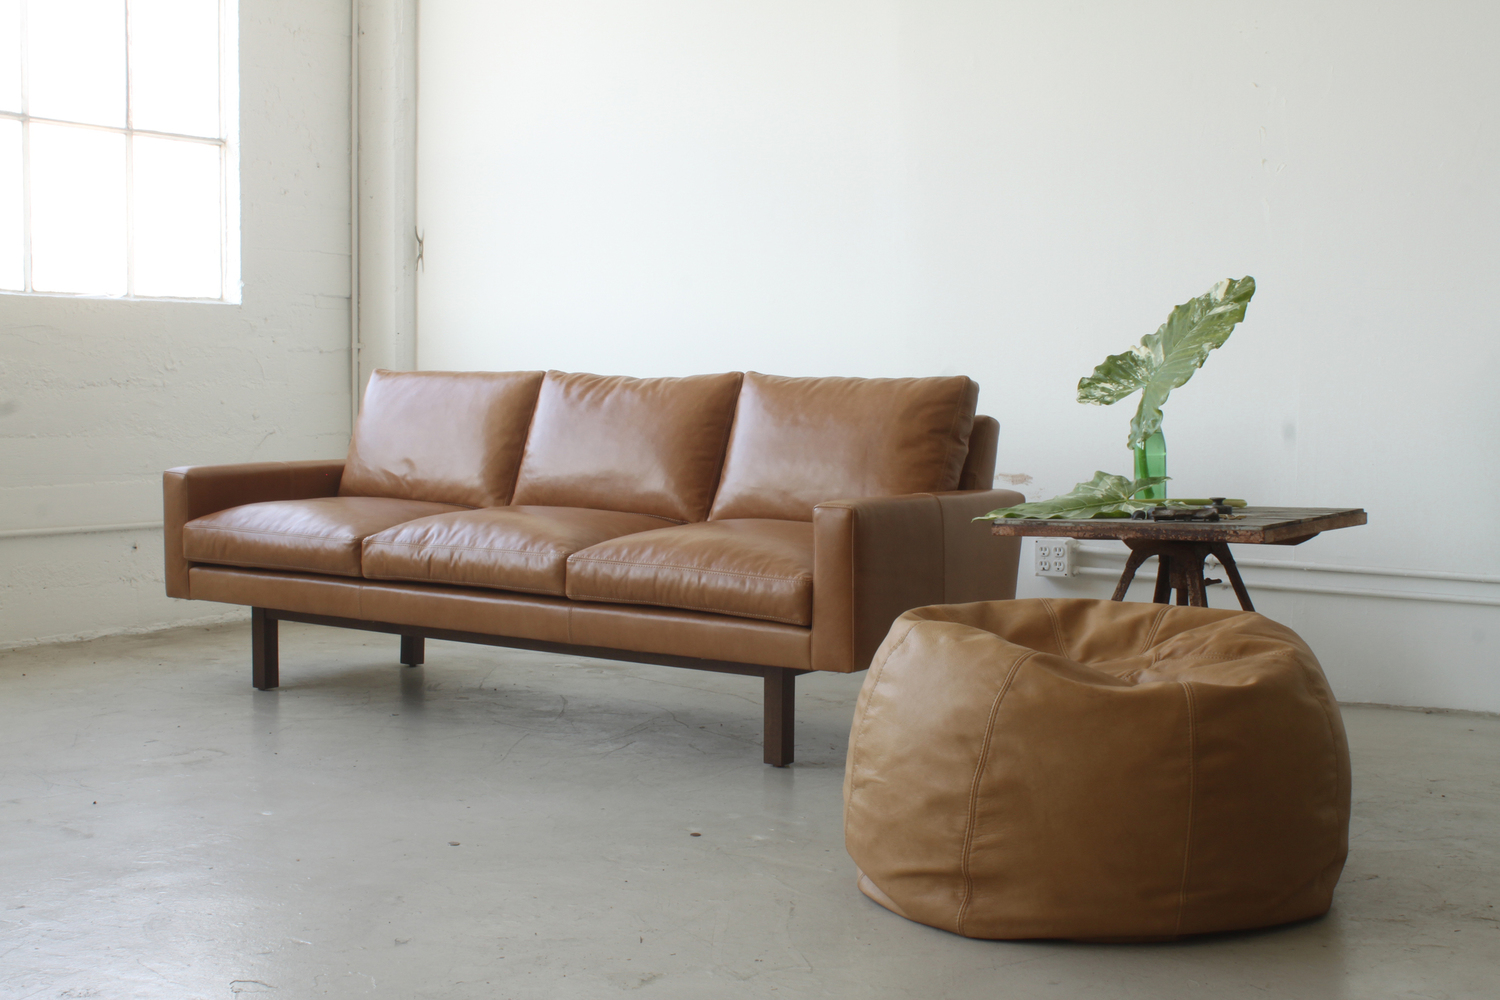 Michael felix standard sofa and pouf